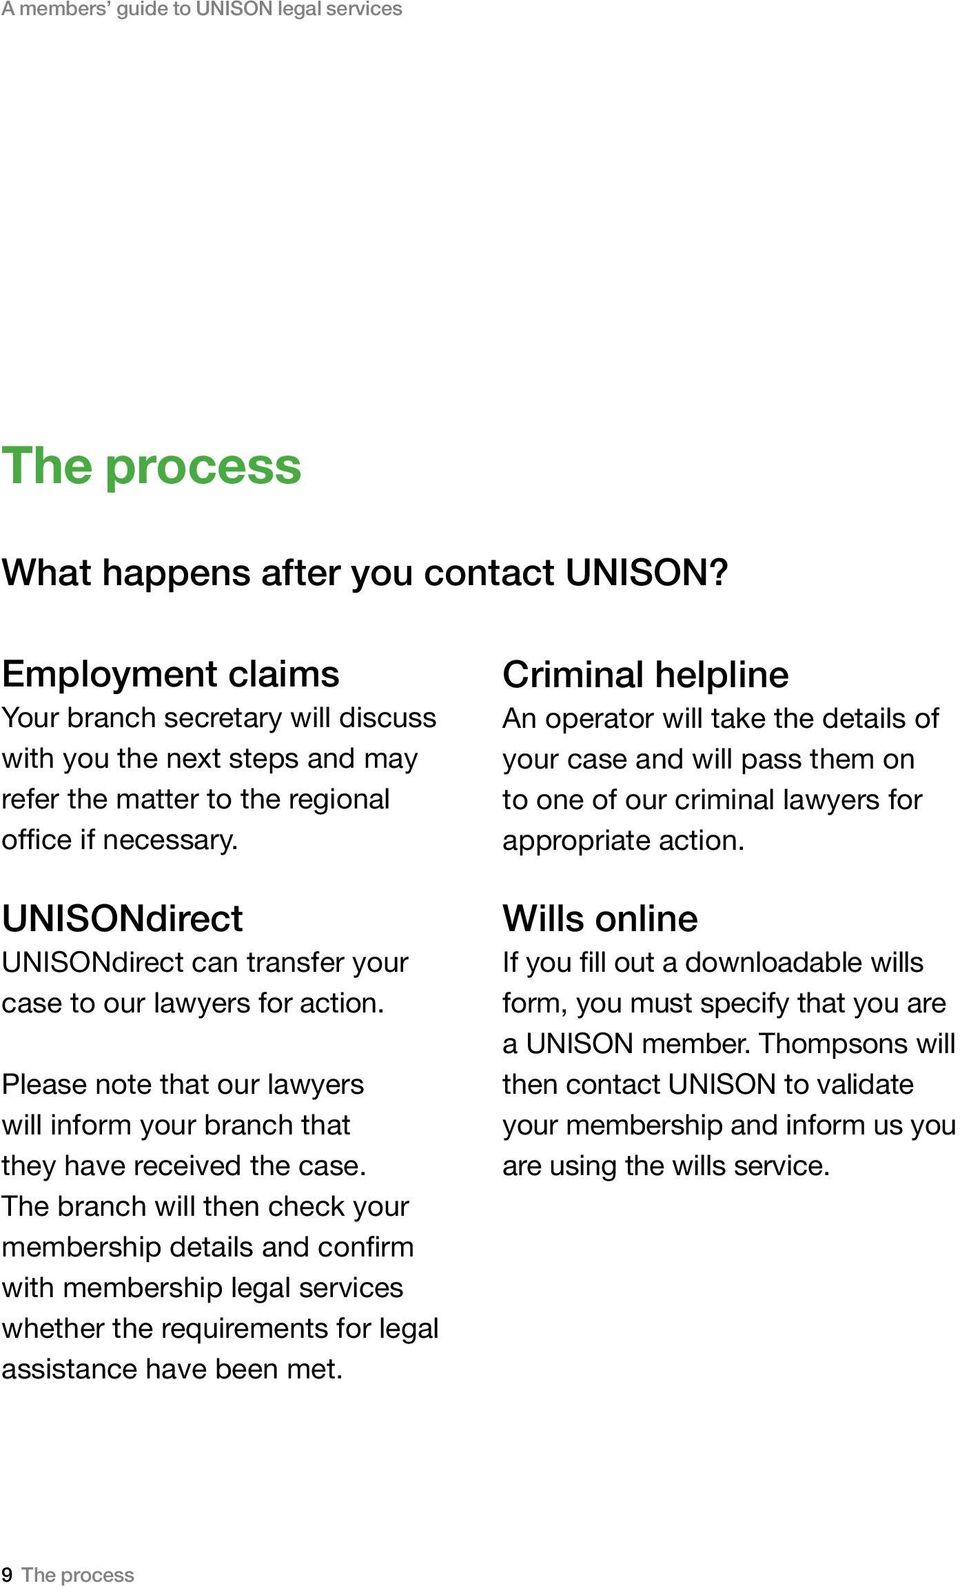 UNISONdirect UNISONdirect can transfer your case to our lawyers for action. Please note that our lawyers will inform your branch that they have received the case.